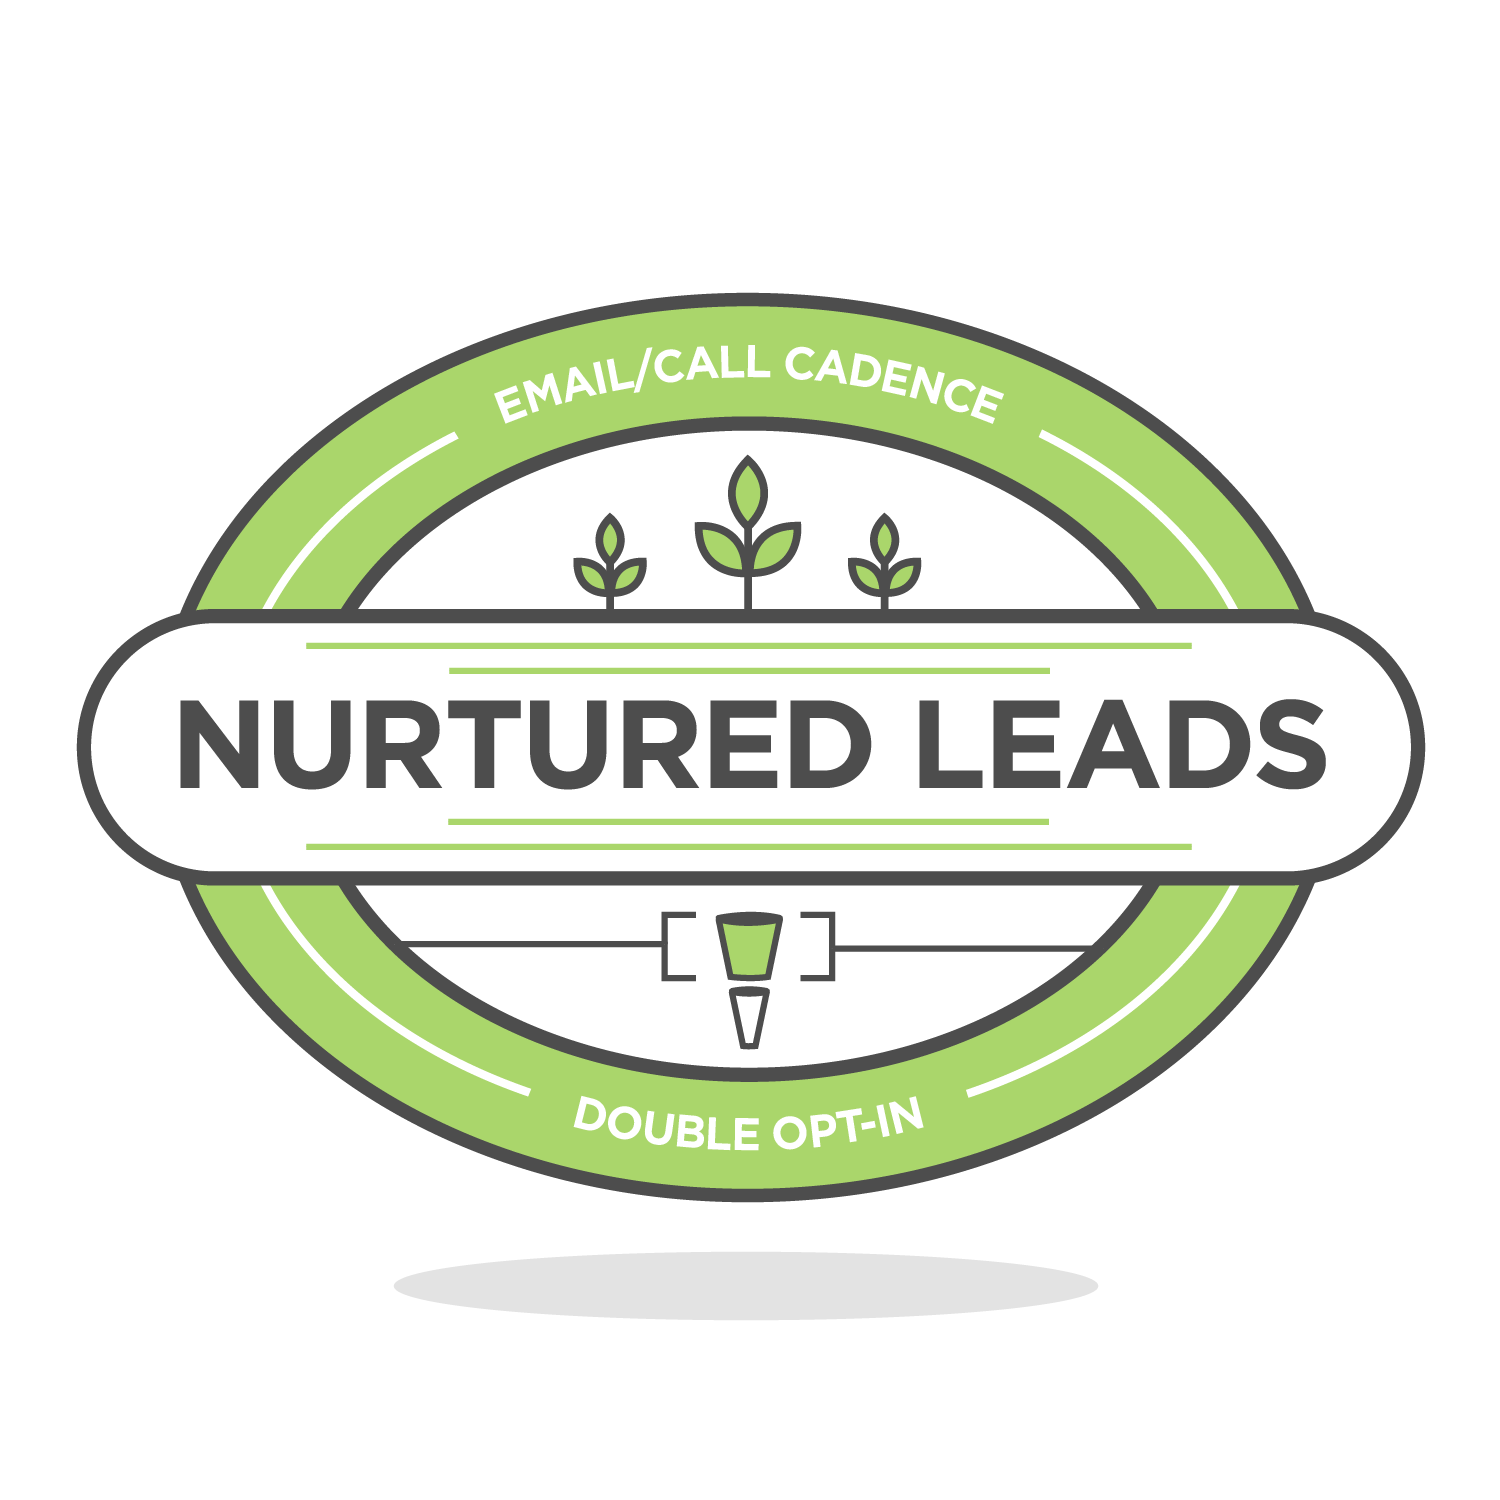 nurtured leads badge icon